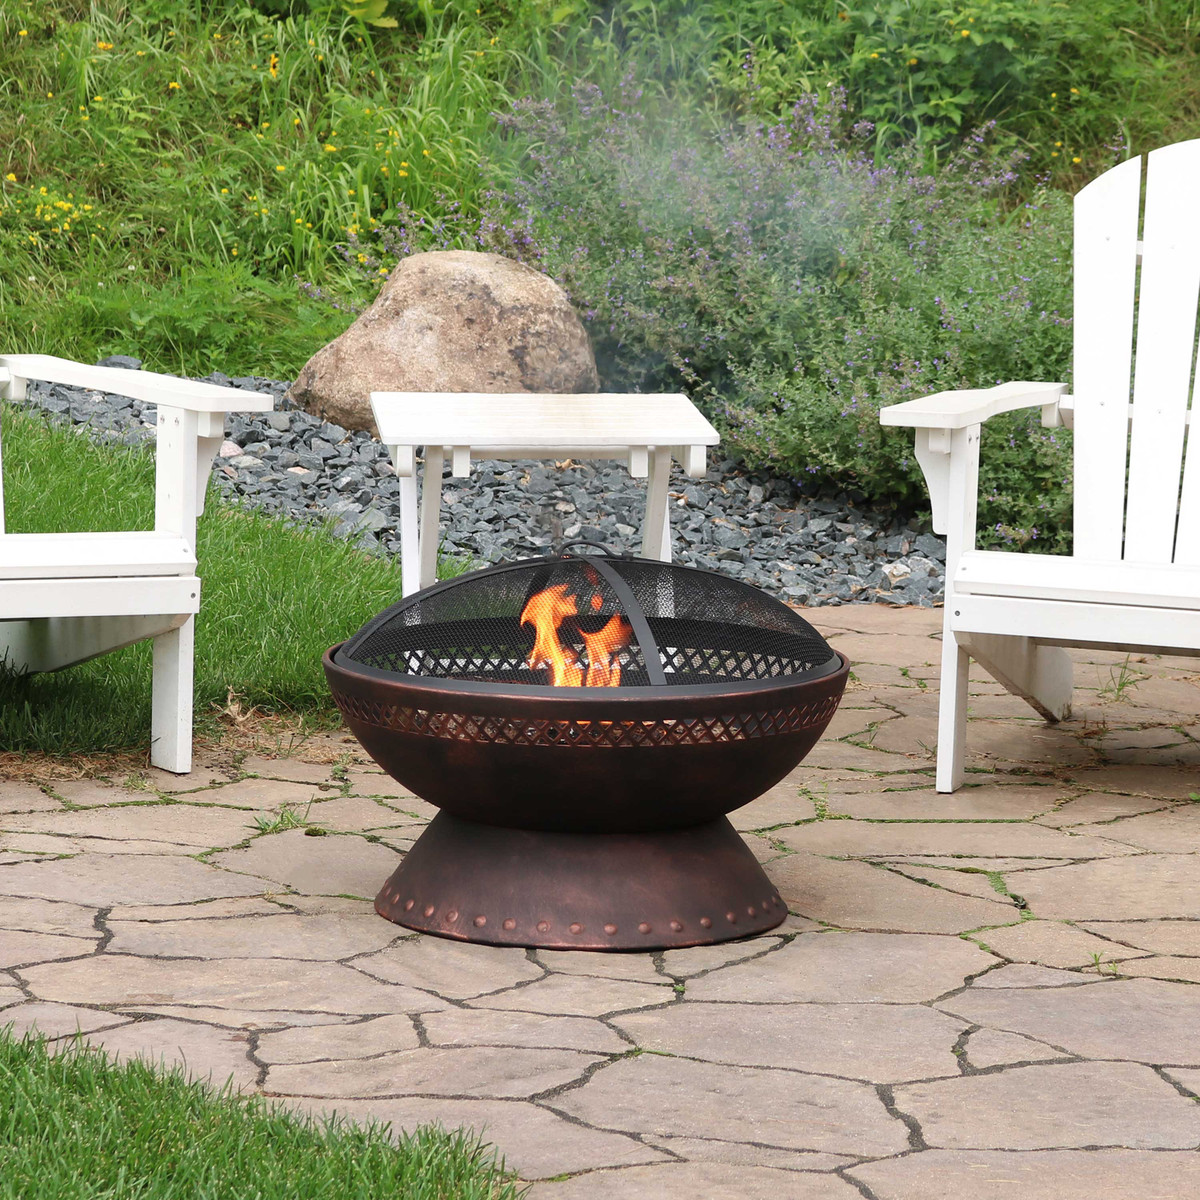 Sunnydaze Chalice Steel Outdoor Wood Burning Fire Pit With Copper Finish 25 Inch Diameter